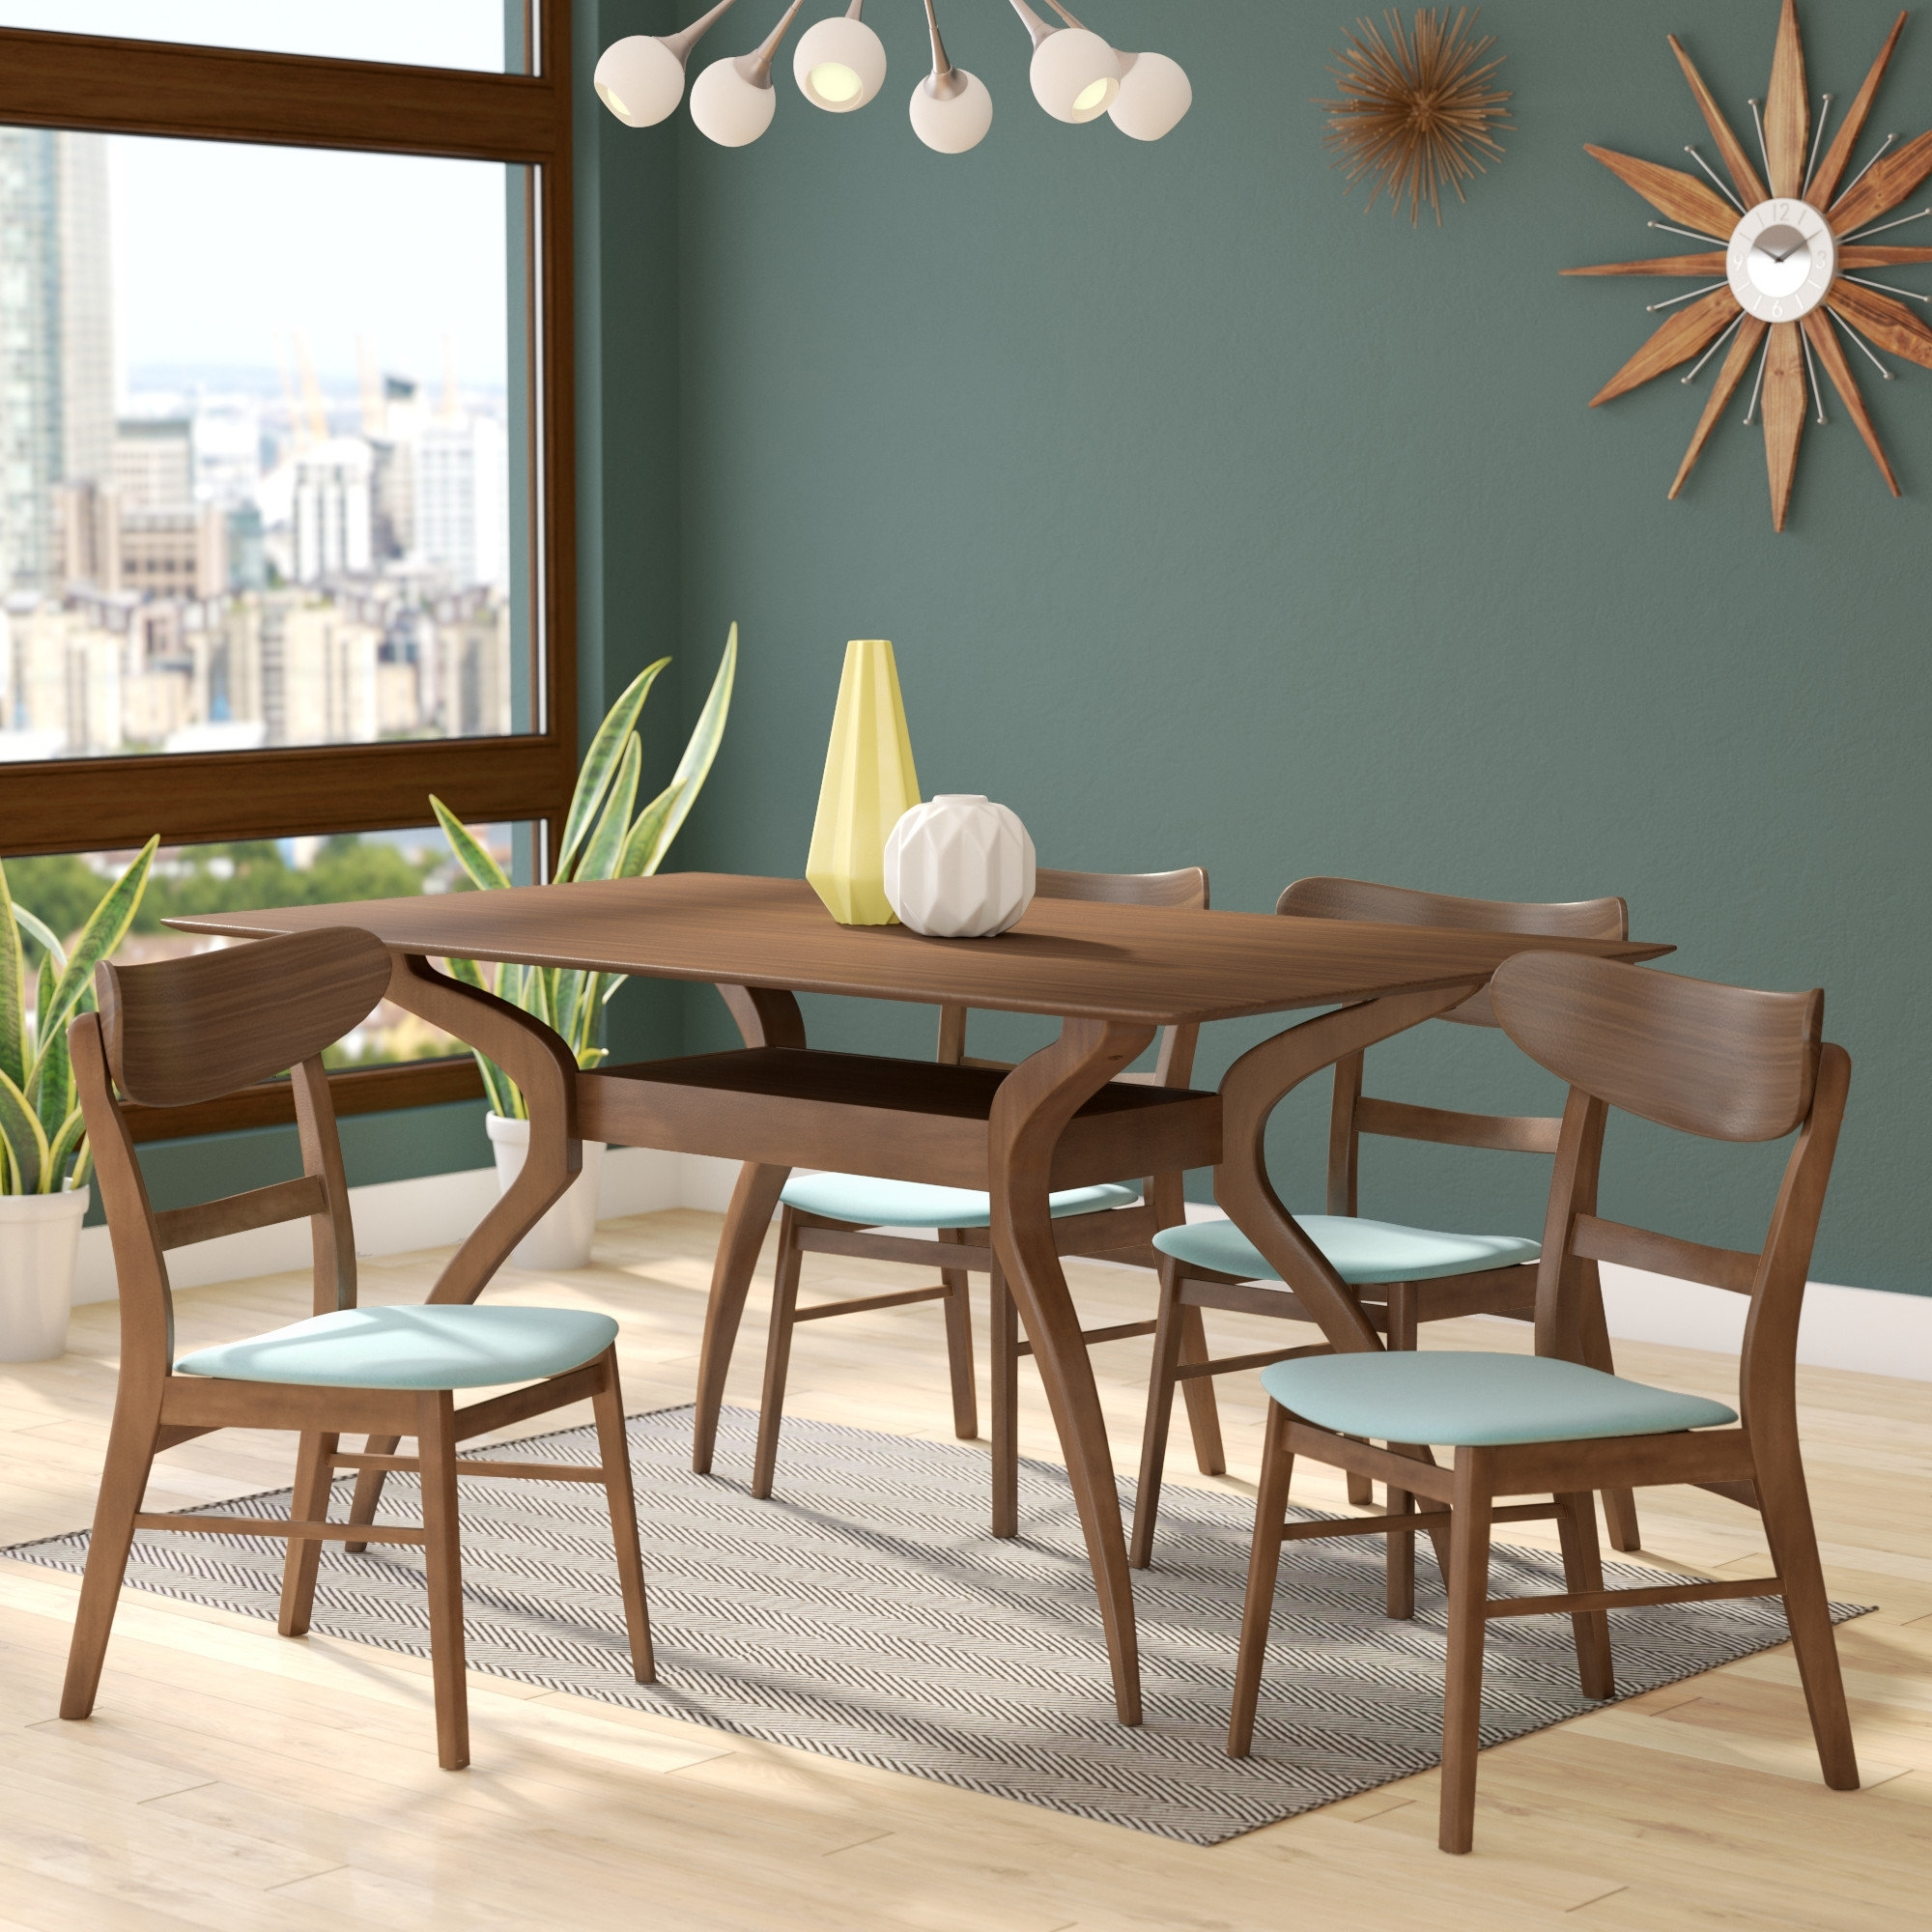 Langley Street Patterson 5 Piece Dining Set & Reviews | Wayfair Pertaining To Recent Patterson 6 Piece Dining Sets (Image 13 of 20)